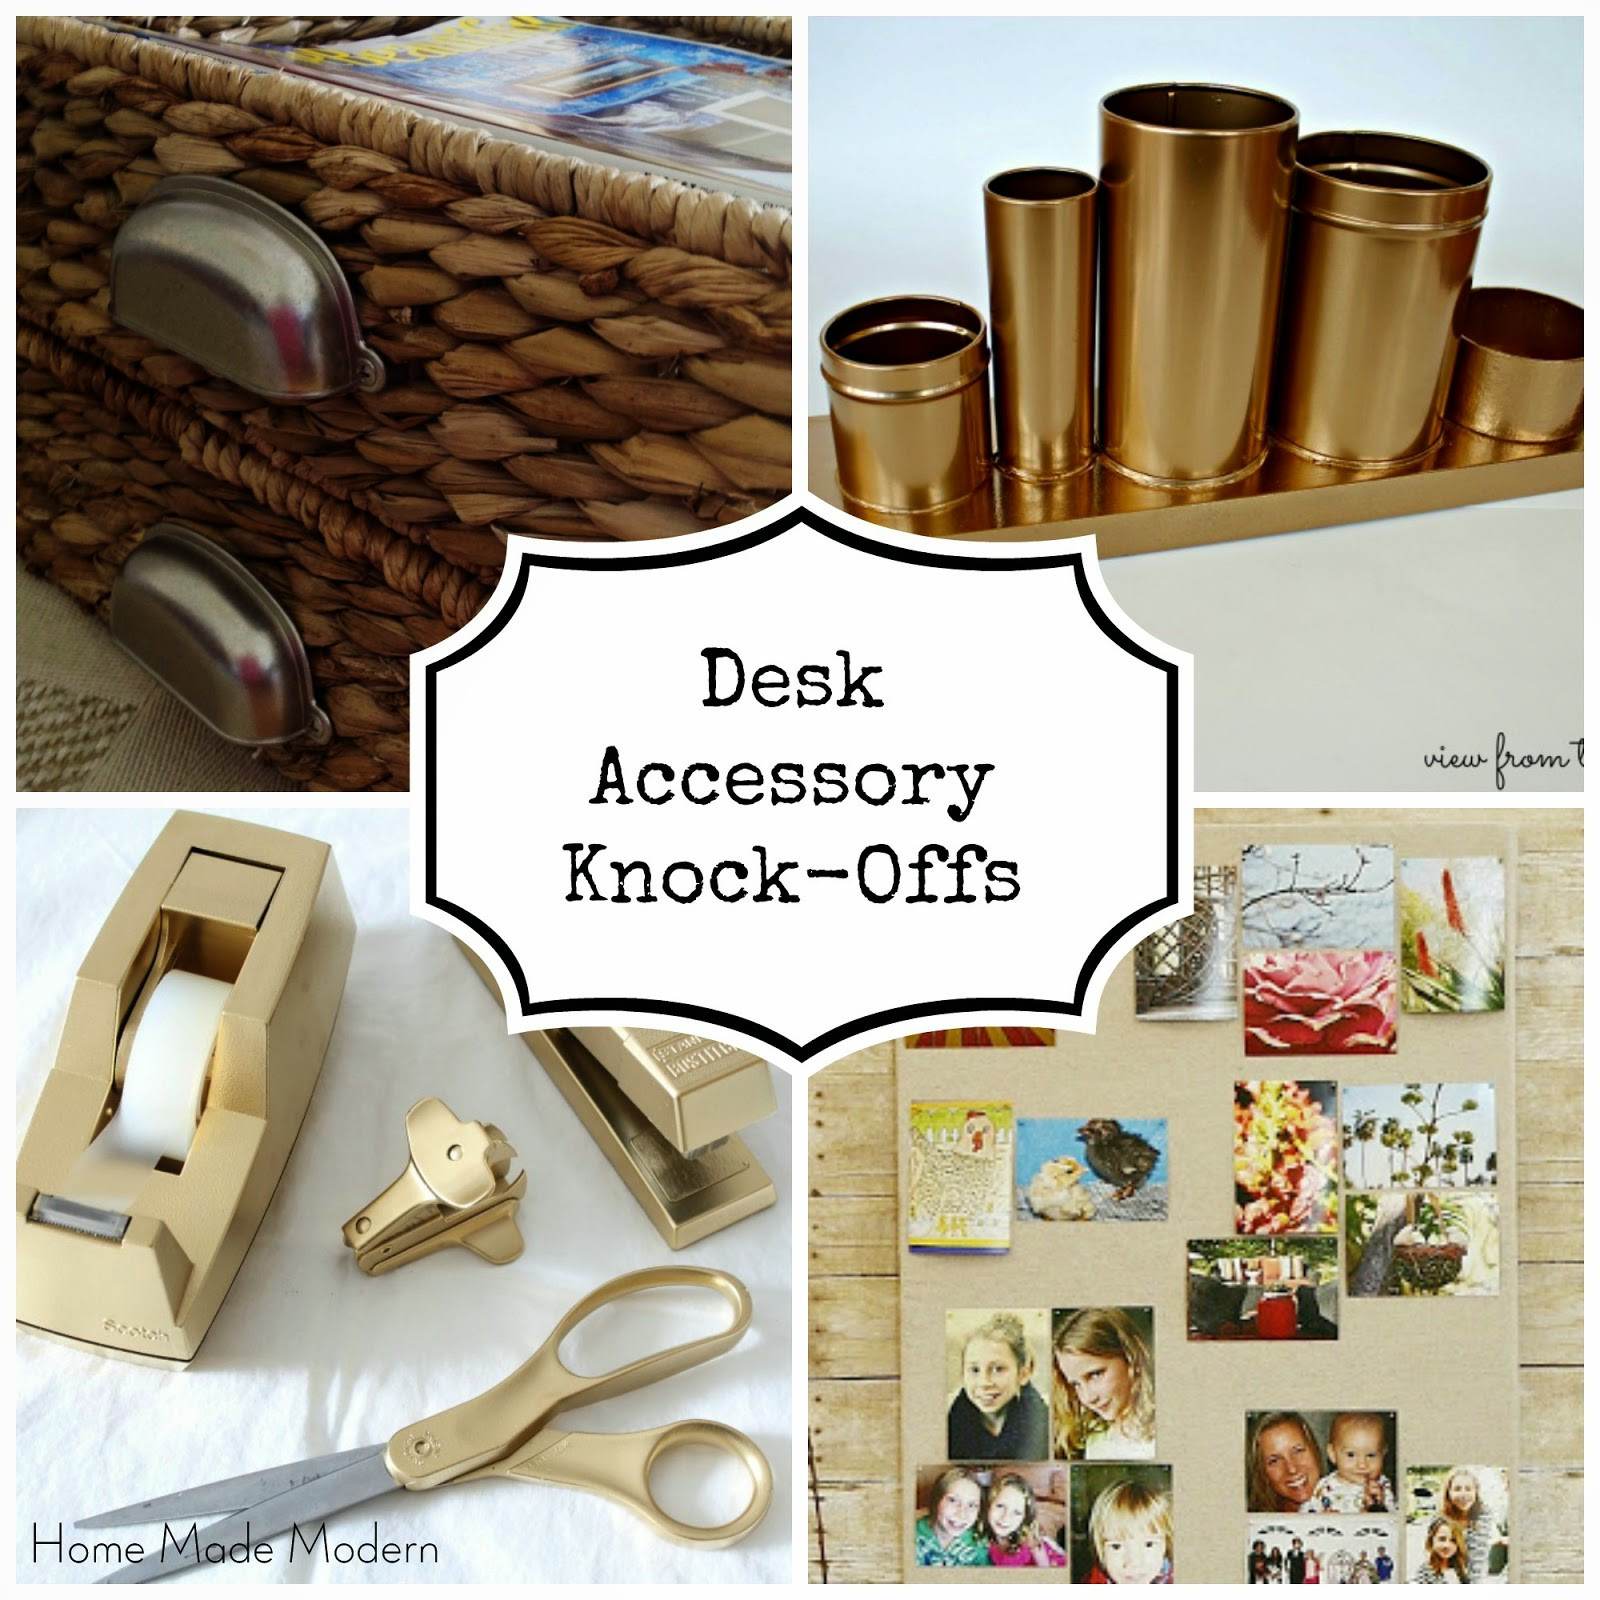 Best ideas about DIY Desk Accessories . Save or Pin Home Made Modern Ultra Chic DIY Desk Accessories Now.